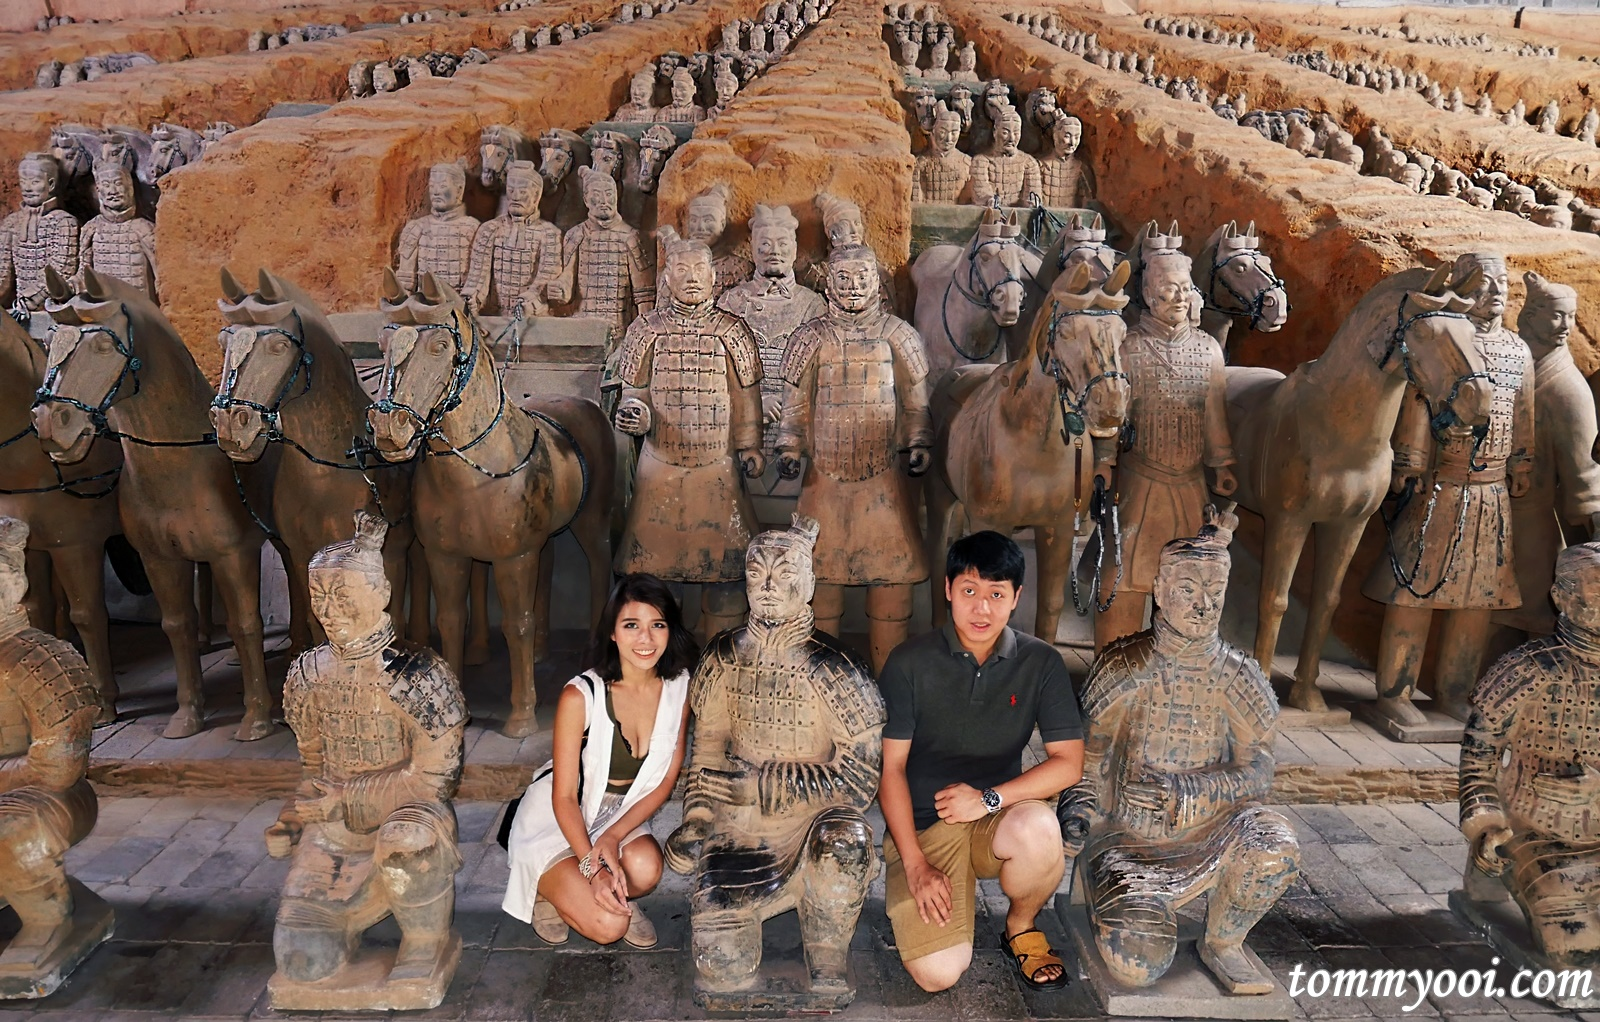 what are the terracotta warriors